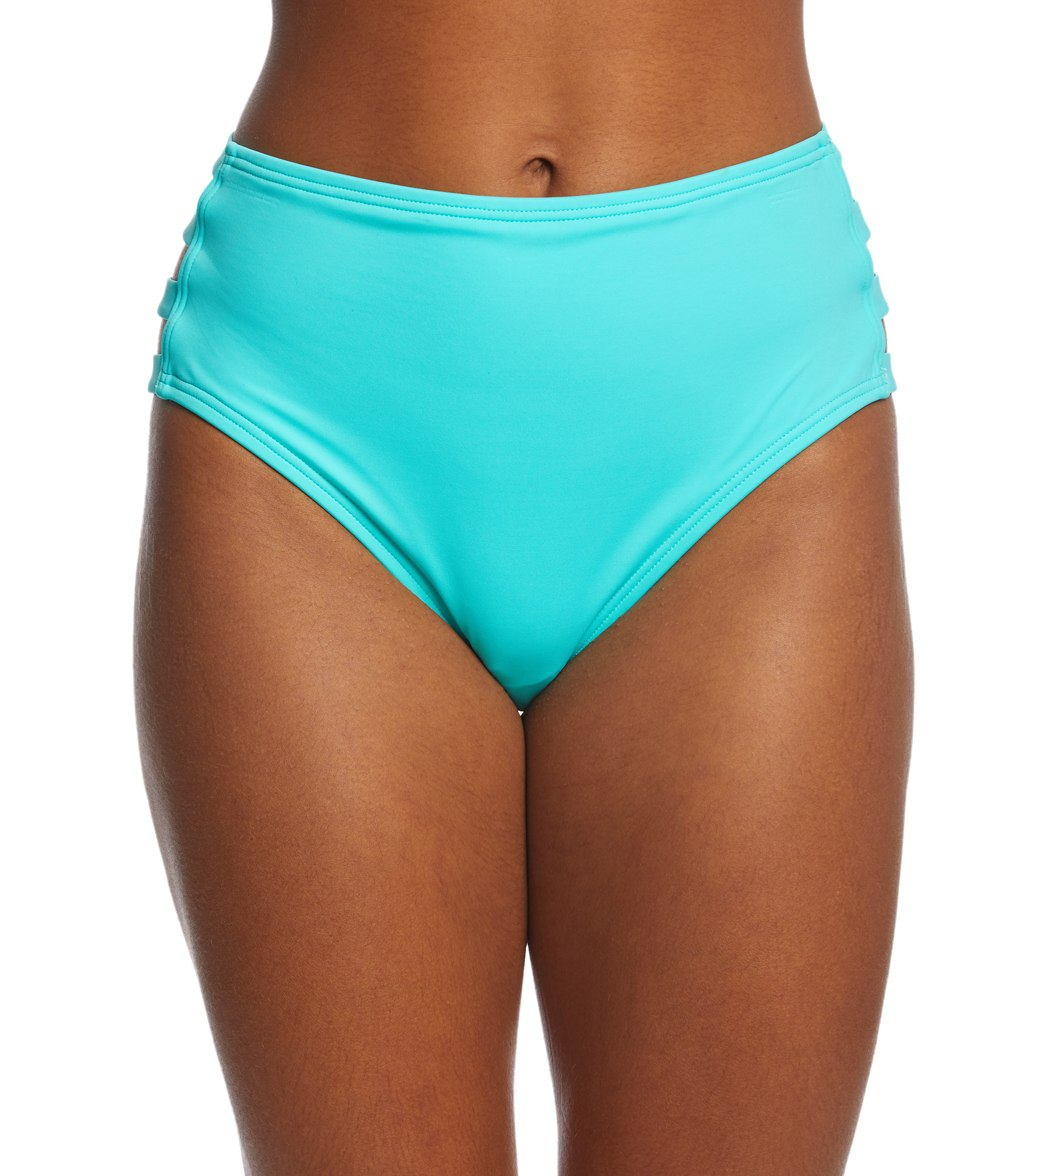 400af7566 Coco Rave Solid Strappy High Waisted Bikini Bottom at SwimOutlet.com